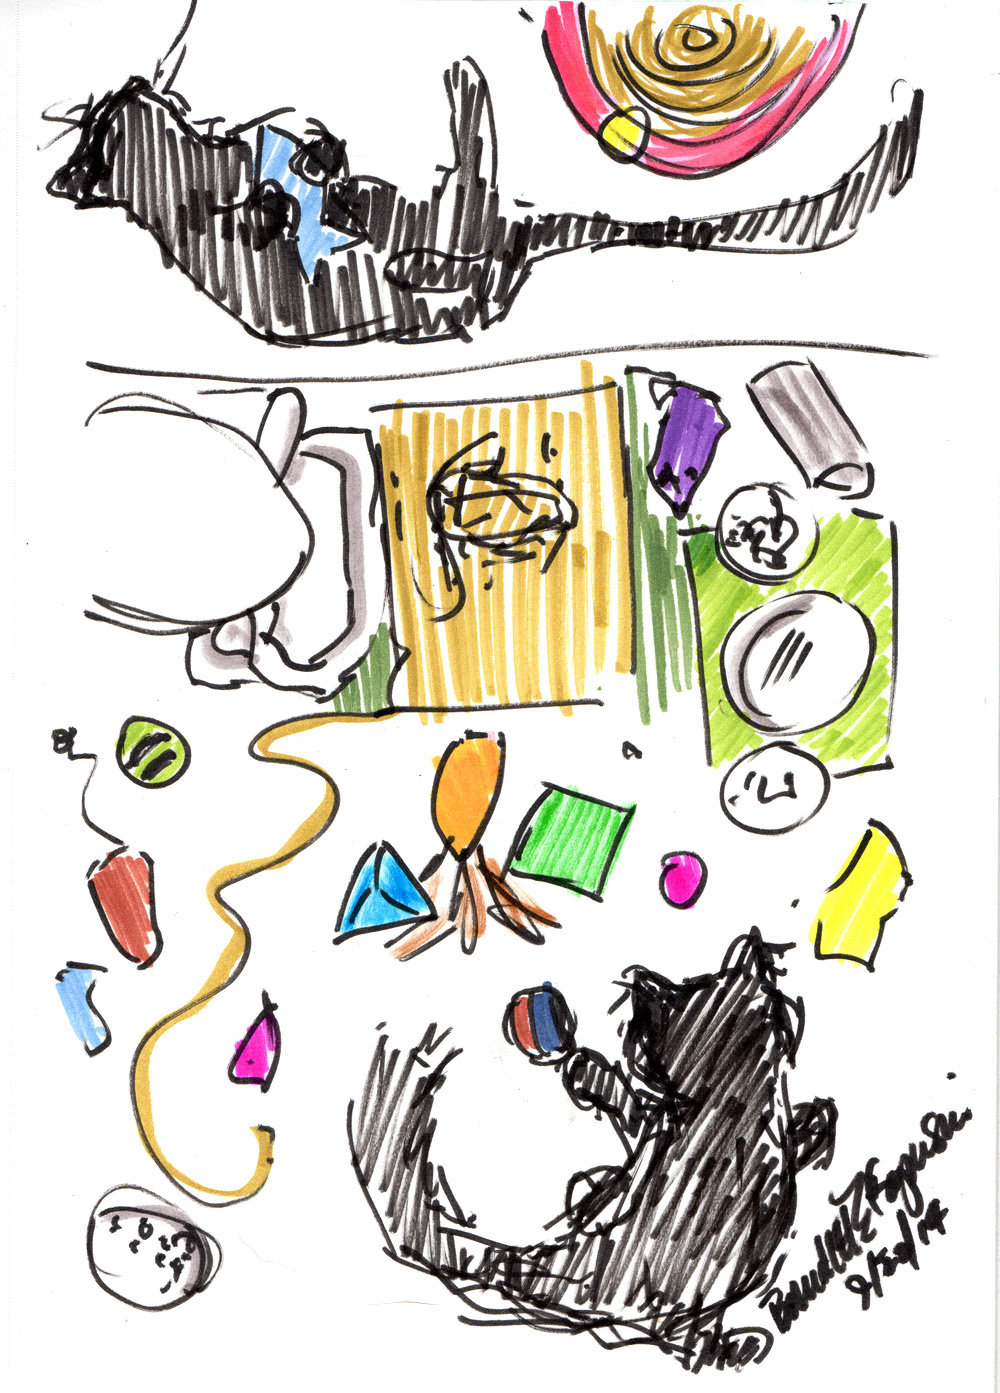 Daily Sketch Reprise: The Kitten Room, 2014